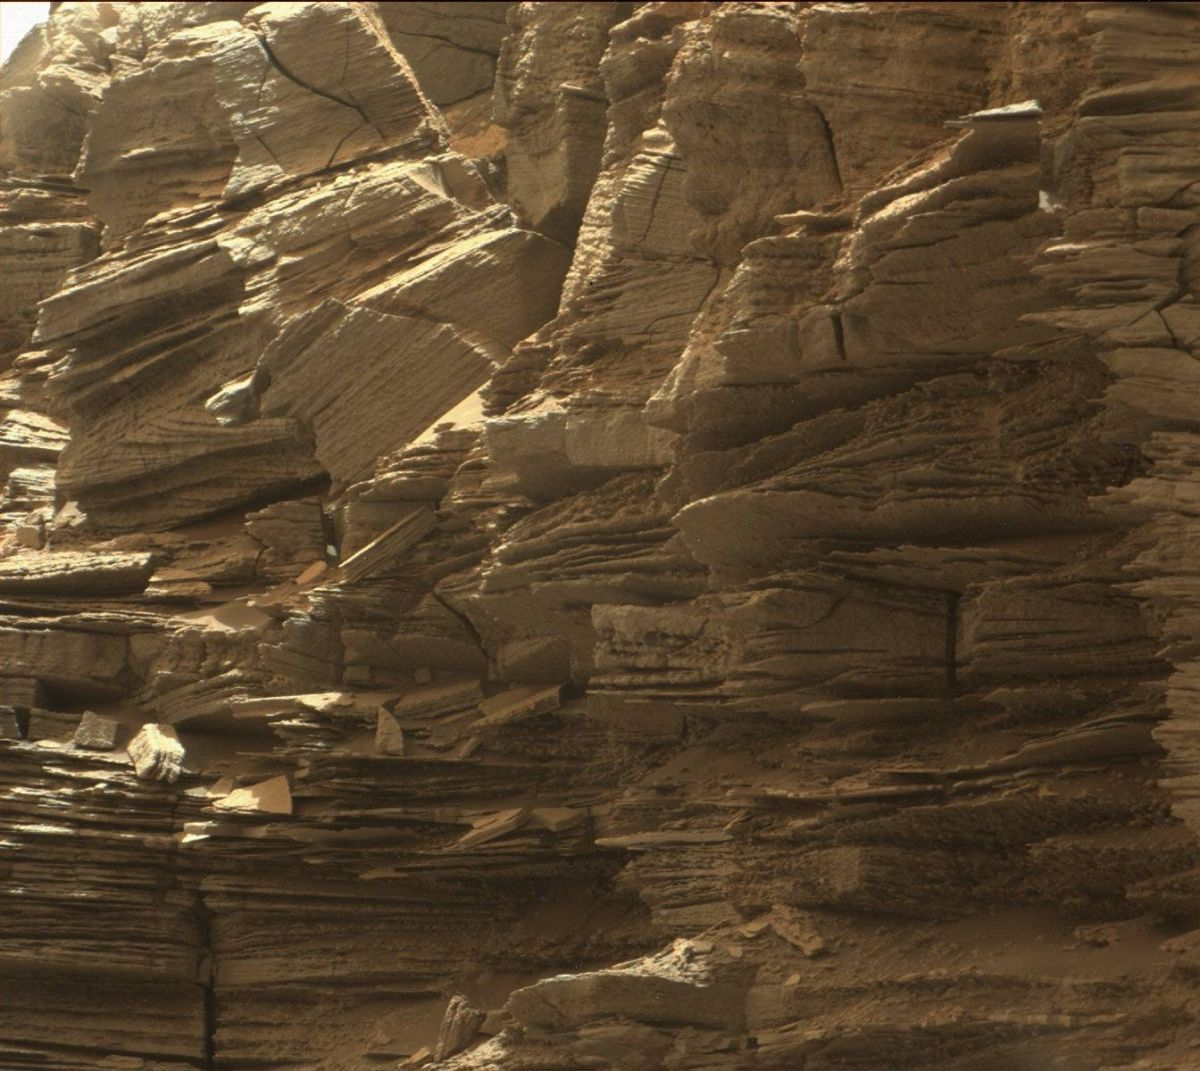 Curiosity Mars Rover: Spectacular Sightseeing